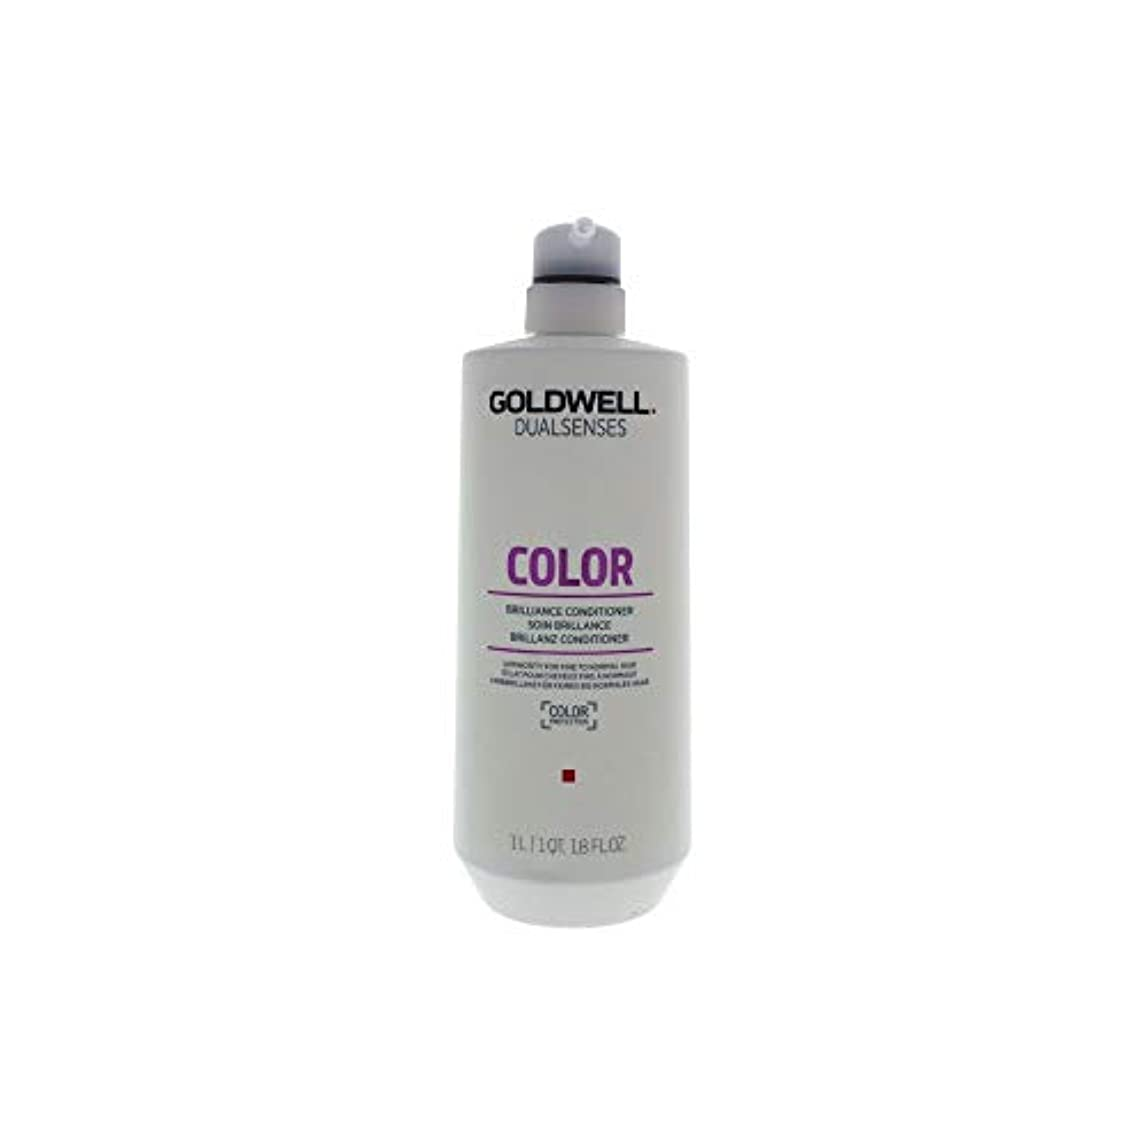 アルカイック言語ブランド名ゴールドウェル Dual Senses Color Brilliance Conditioner (Luminosity For Fine to Normal Hair) 1000ml